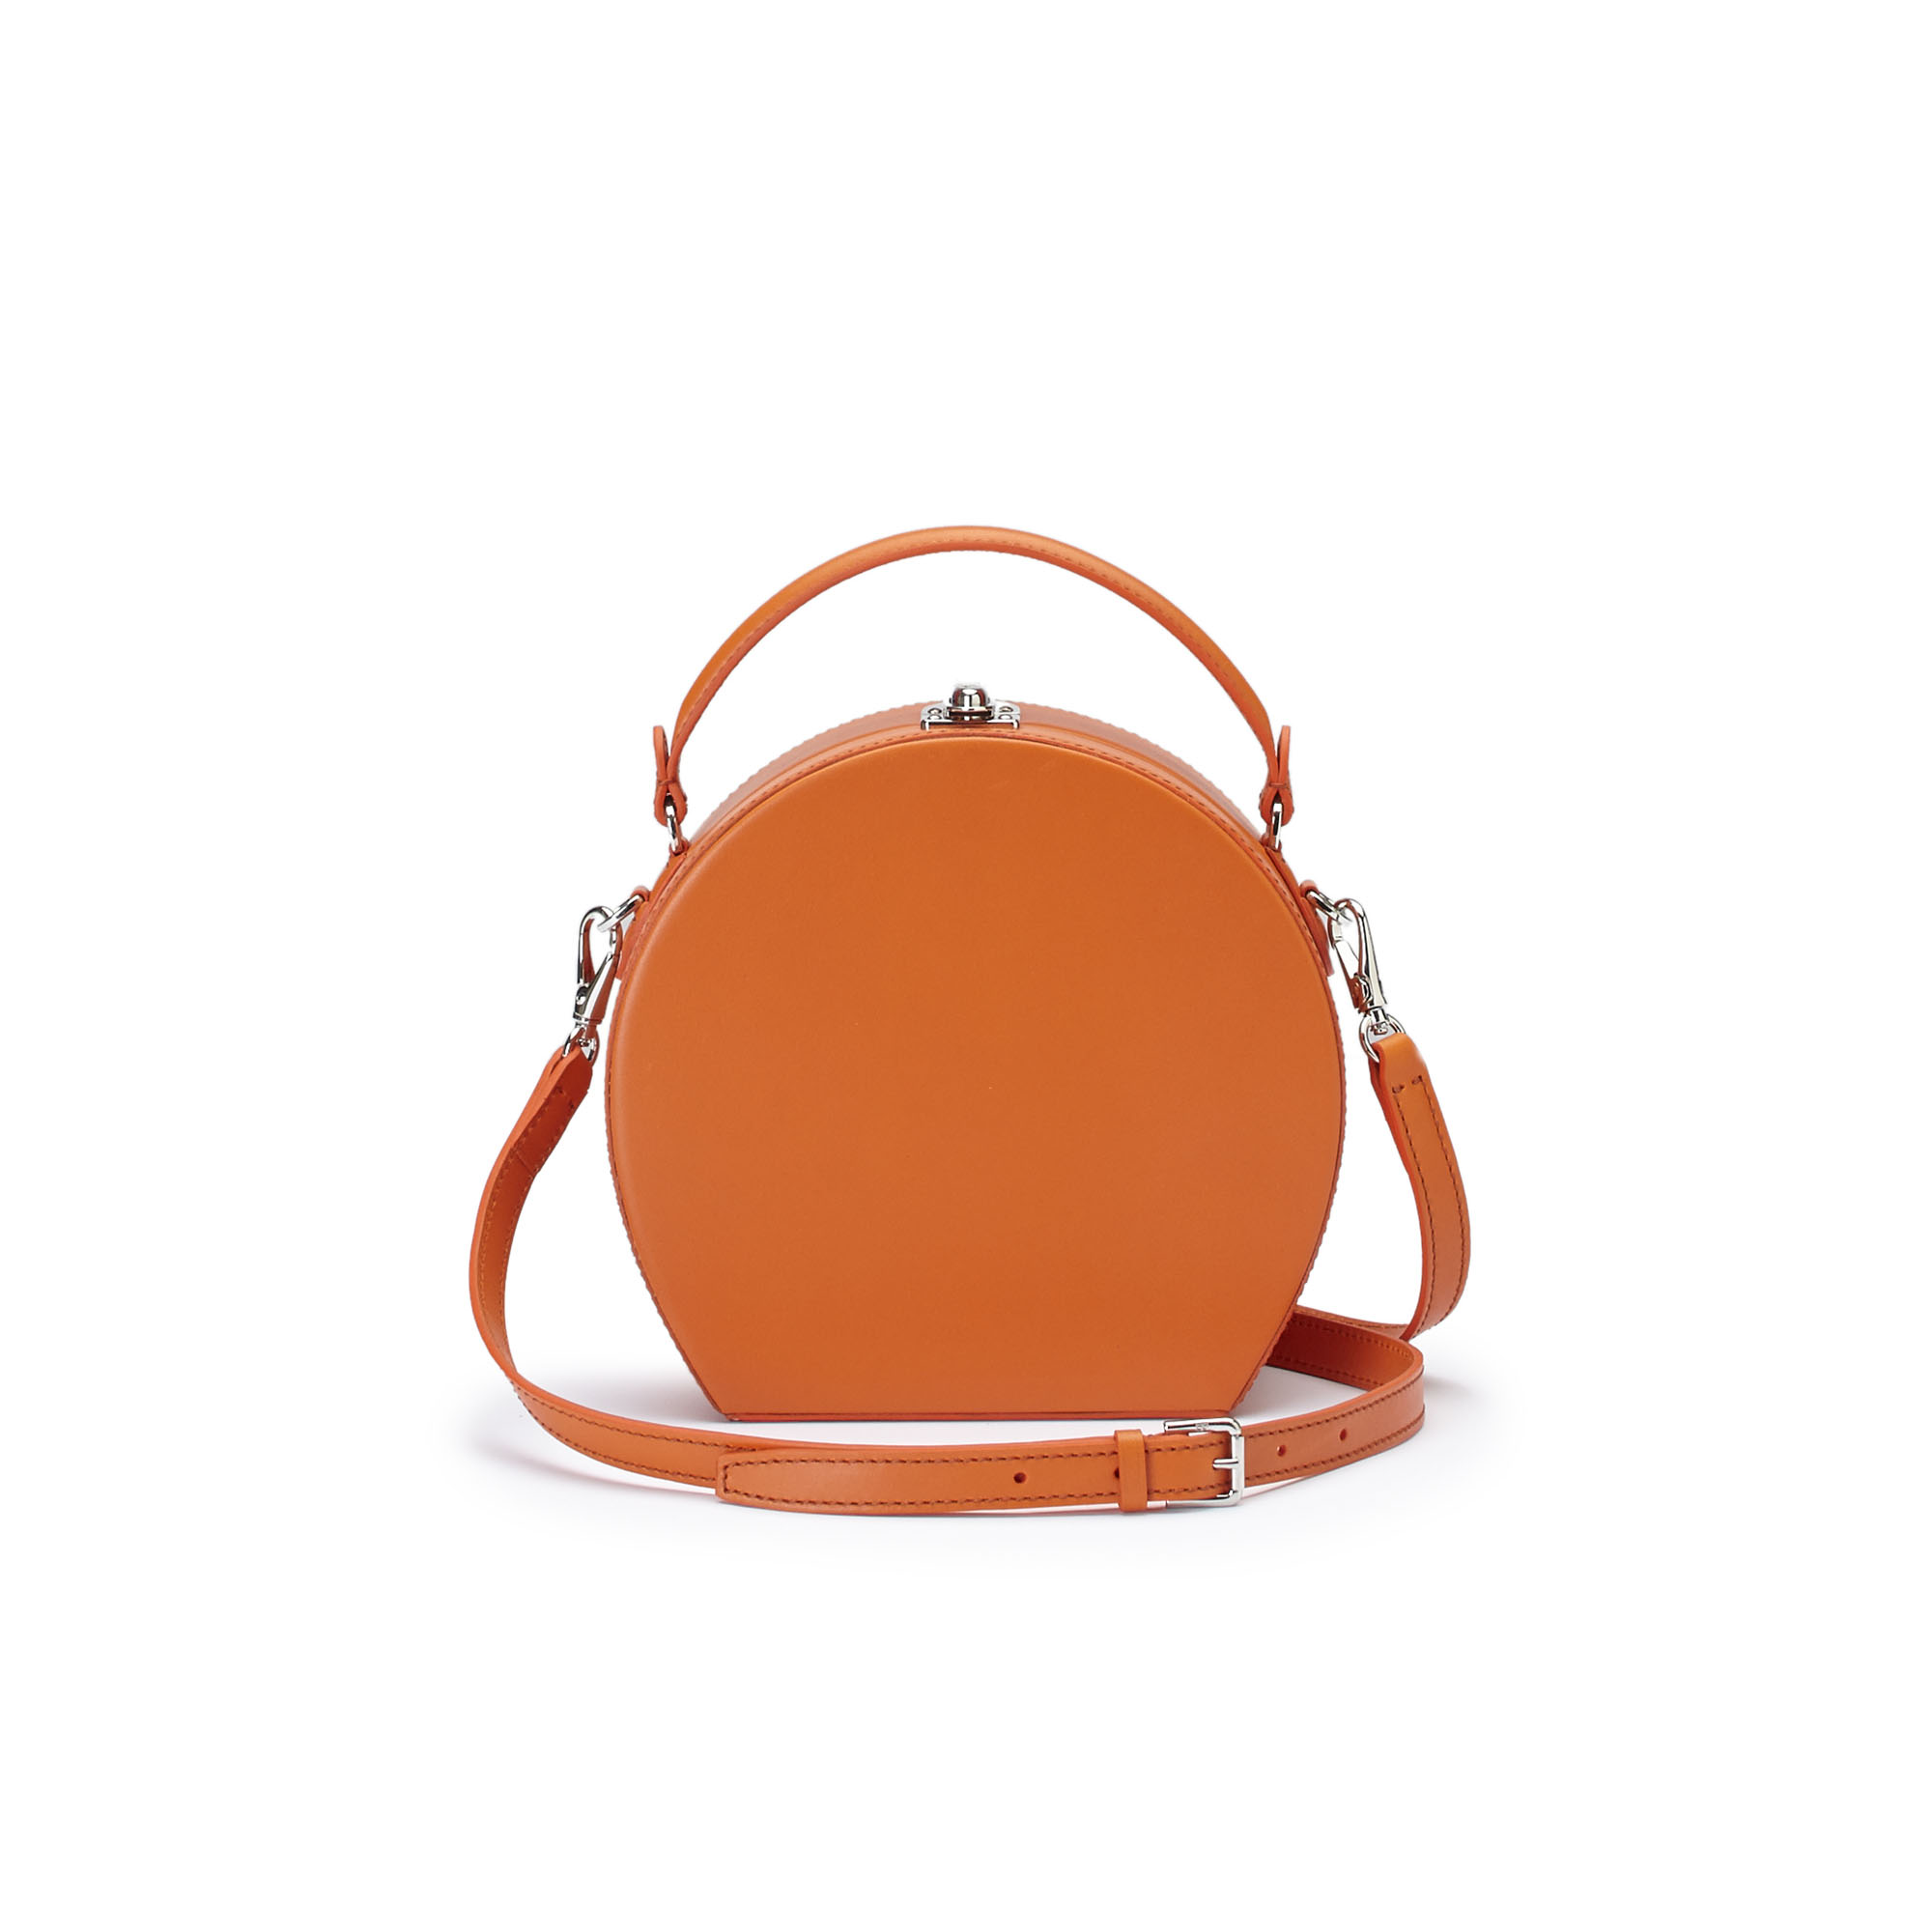 The orange french calf Regular Bertoncina bag by Bertoni 1949 03